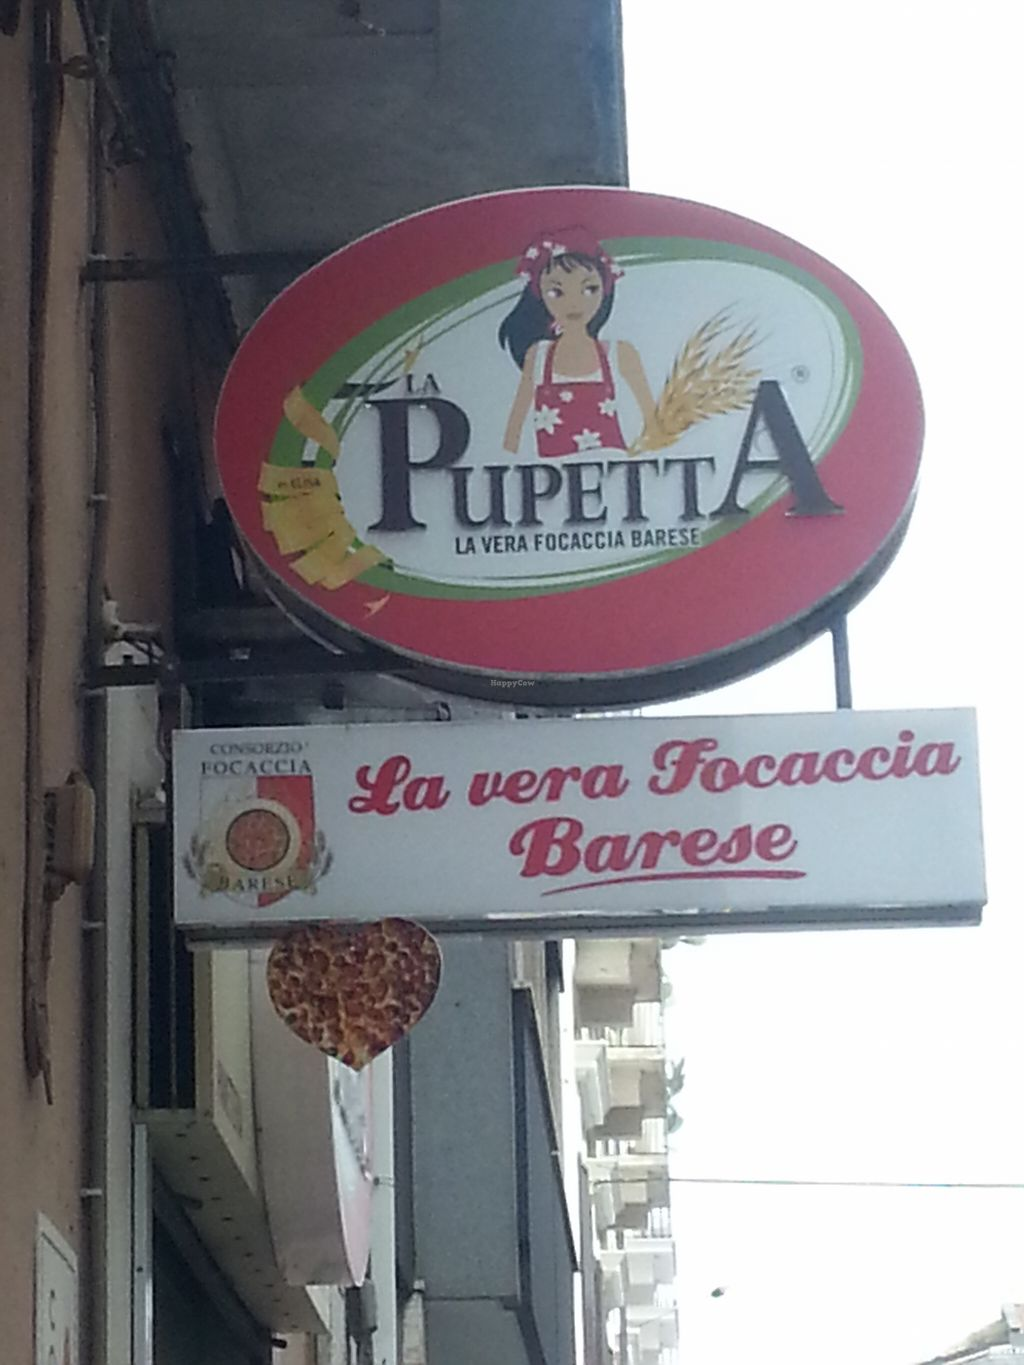 """Photo of La Pupetta  by <a href=""""/members/profile/MargoMustert"""">MargoMustert</a> <br/>This is how you recognize it! <br/> August 12, 2015  - <a href='/contact/abuse/image/61849/113242'>Report</a>"""